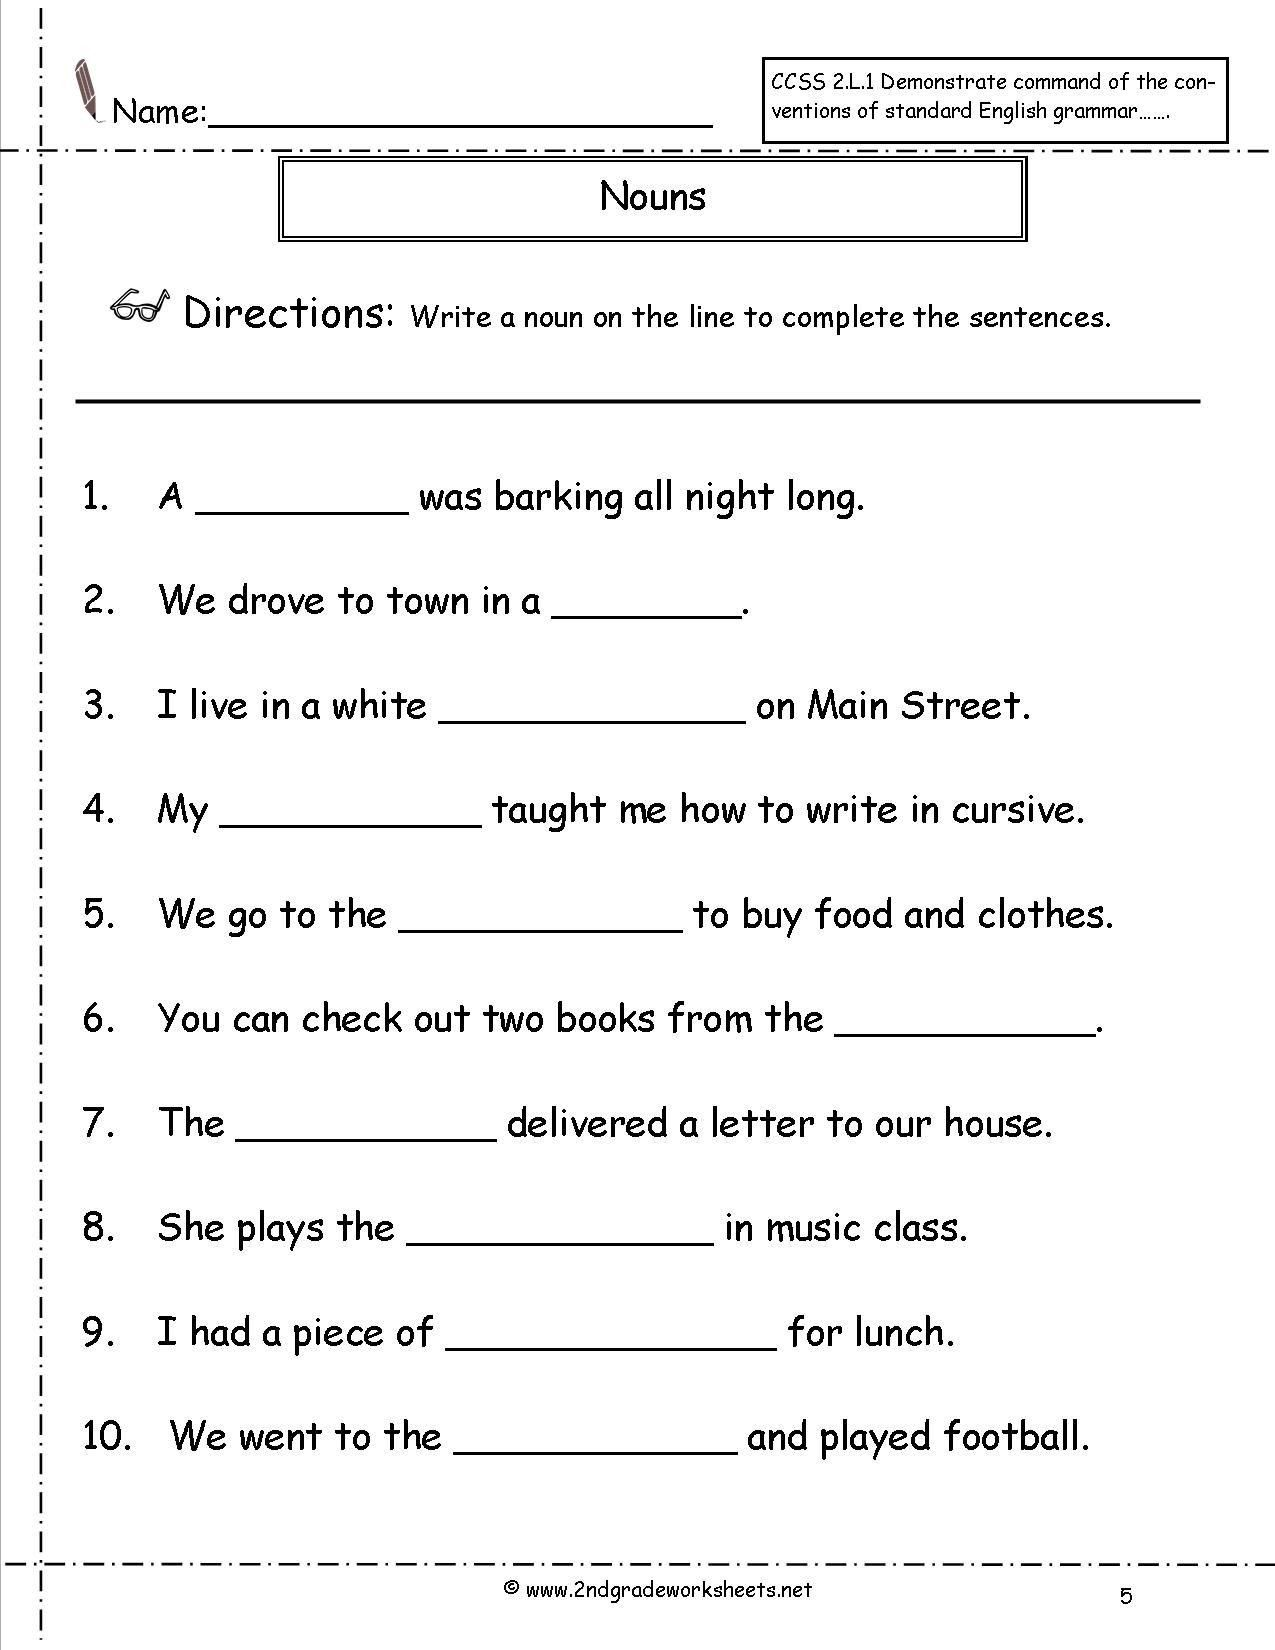 Pin By Evelyn Cindy Free Worksheets On Nursery Education In 2020 Nouns Worksheet Possessive Nouns Worksheets 6th Grade Worksheets